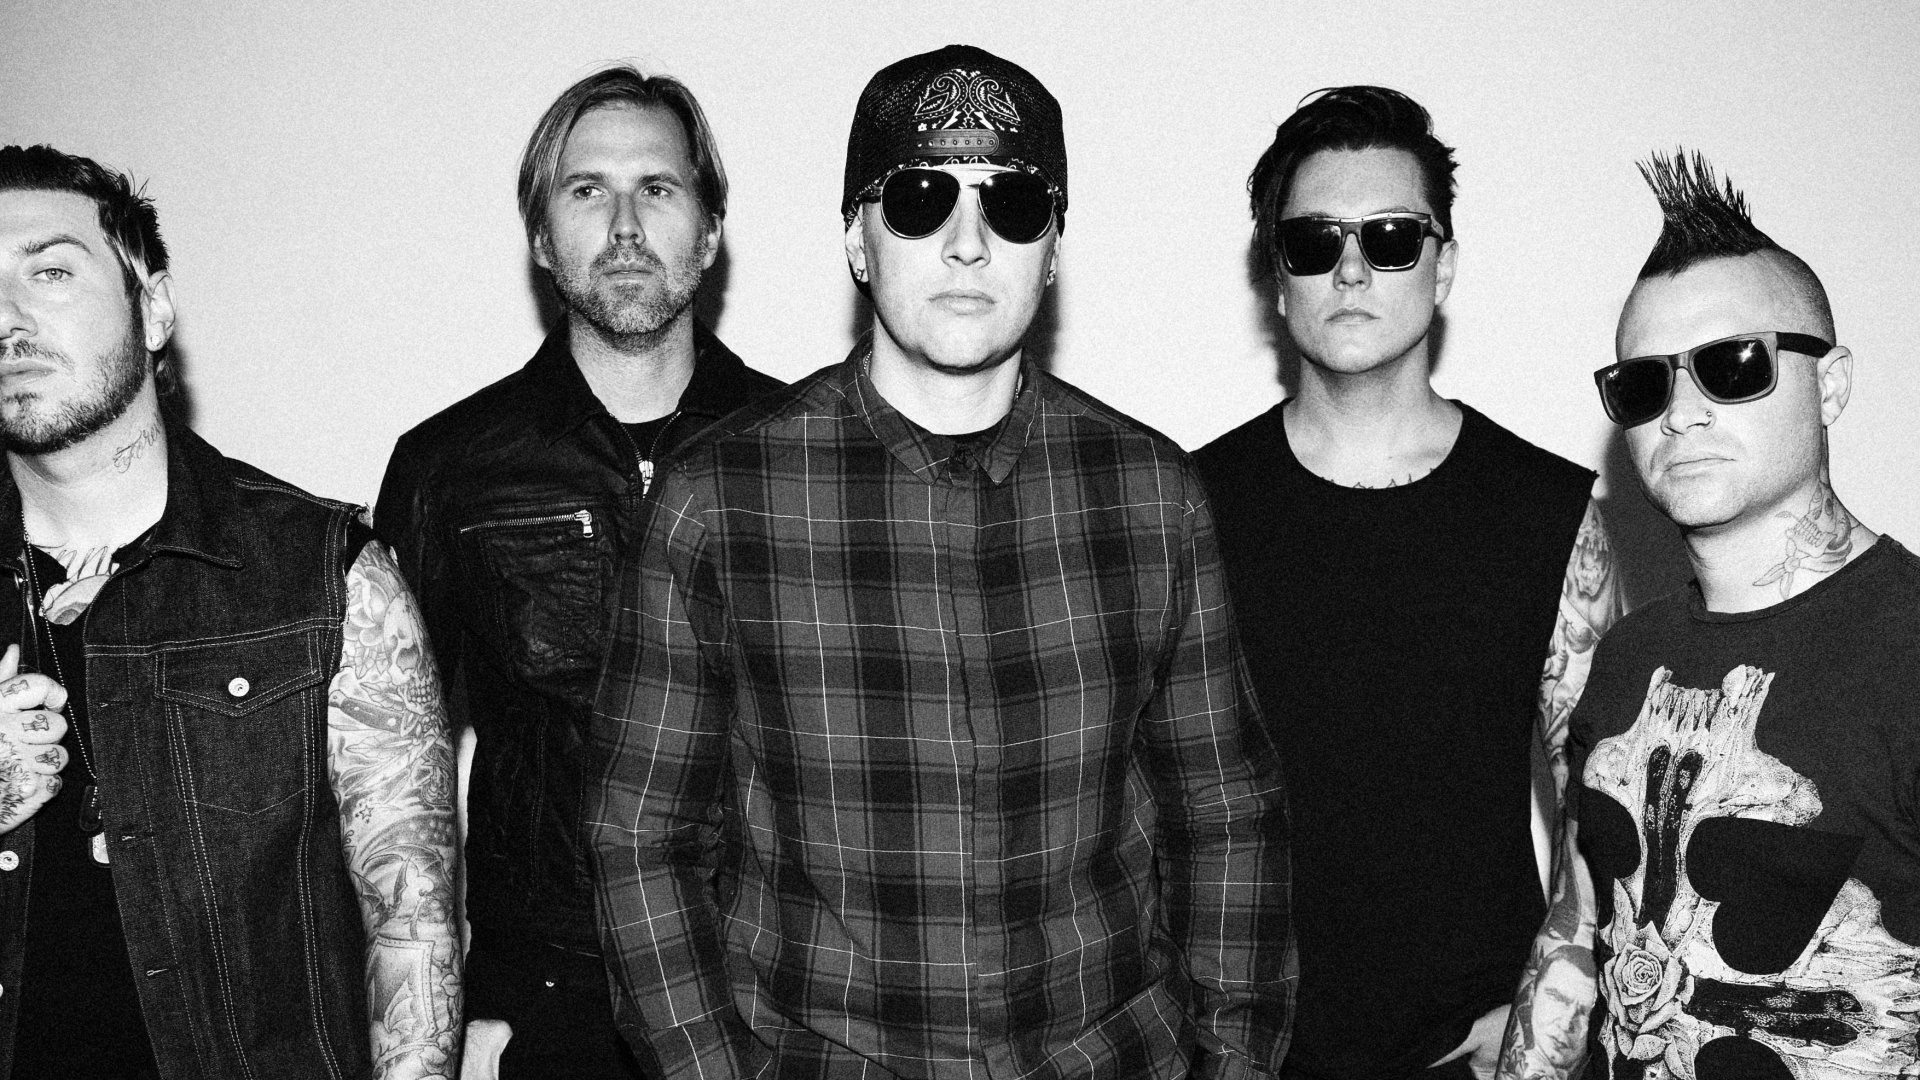 Music Business (Not) As Usual: an Exclusive Interview With M. Shadows of Avenged Sevenfold